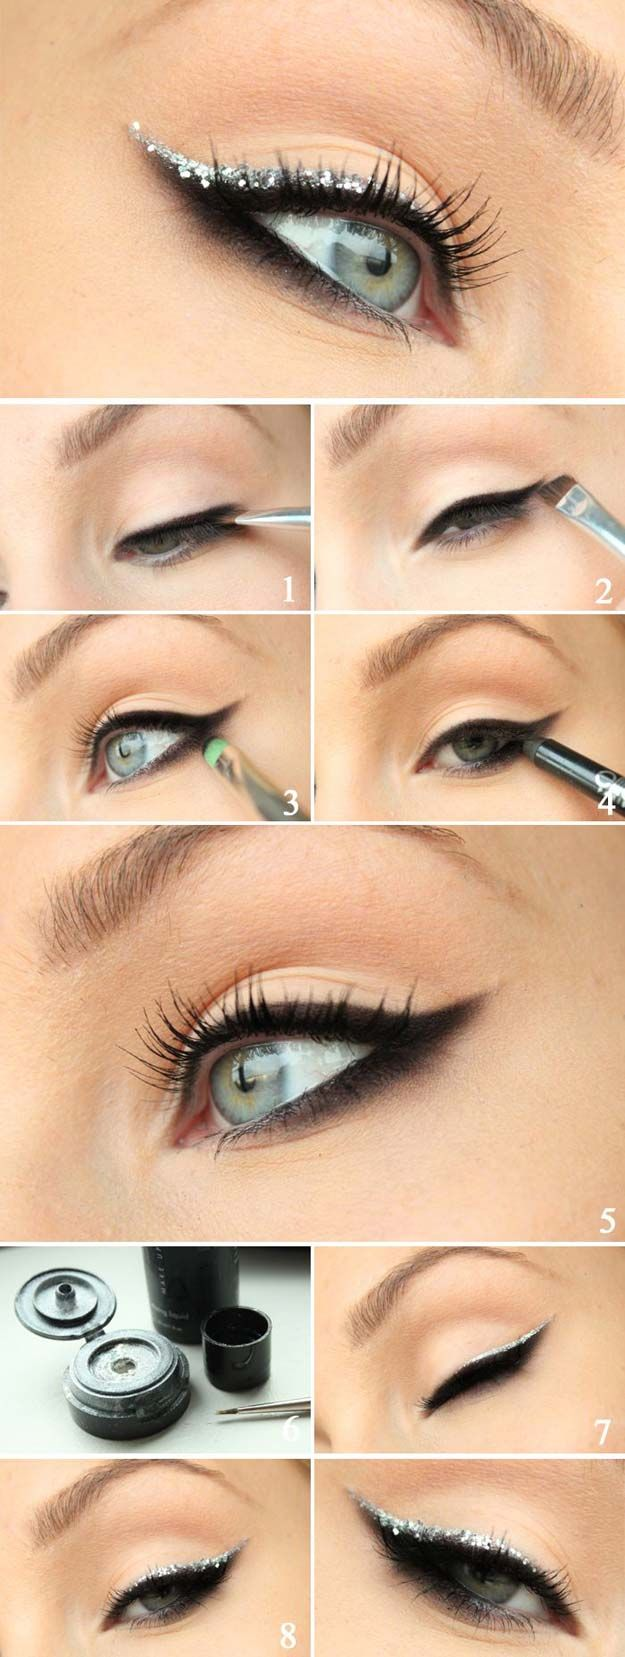 Best Makeup Tutorials for Teens -Holiday Glitter - Easy Makeup Ideas for Beginners - Step by Step Tutorials for Foundation, Eye Shadow, Lipstick, Cheeks, Contour, Eyebrows and Eyes - Awesome Makeup Hacks and Tips for Simple DIY Beauty - Day and Evening Looks http://diyprojectsforteens.com/makeup-tutorials-teens